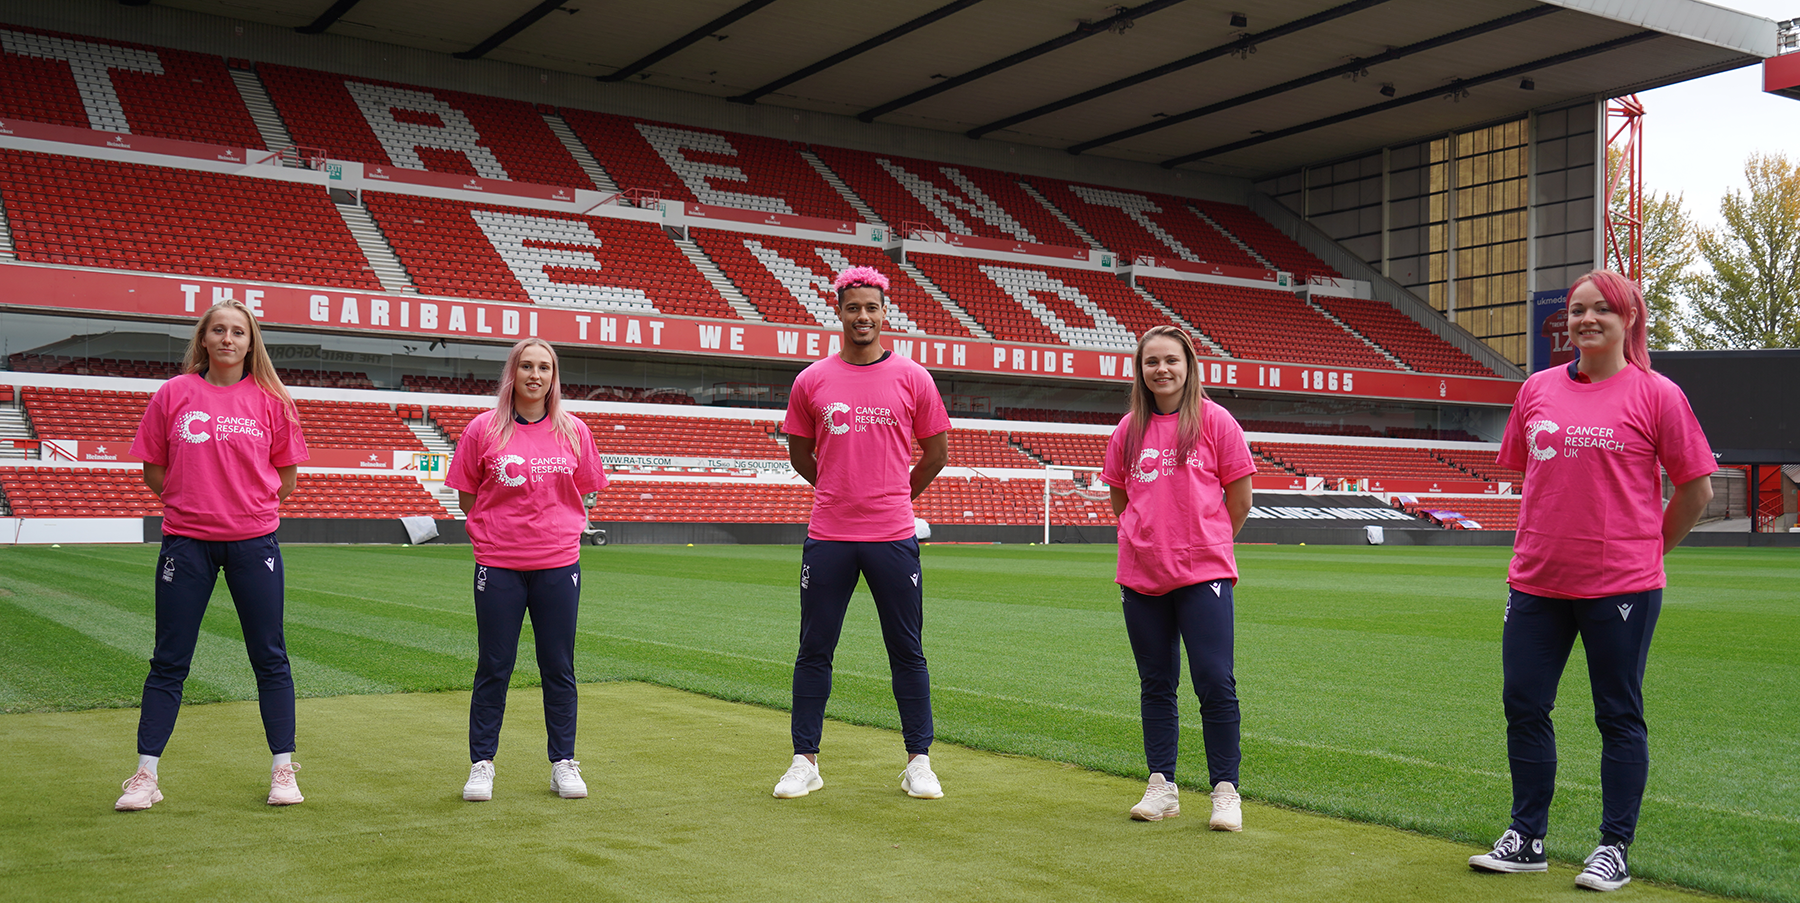 Coming together to support Lyle Taylor and Cancer Research UK